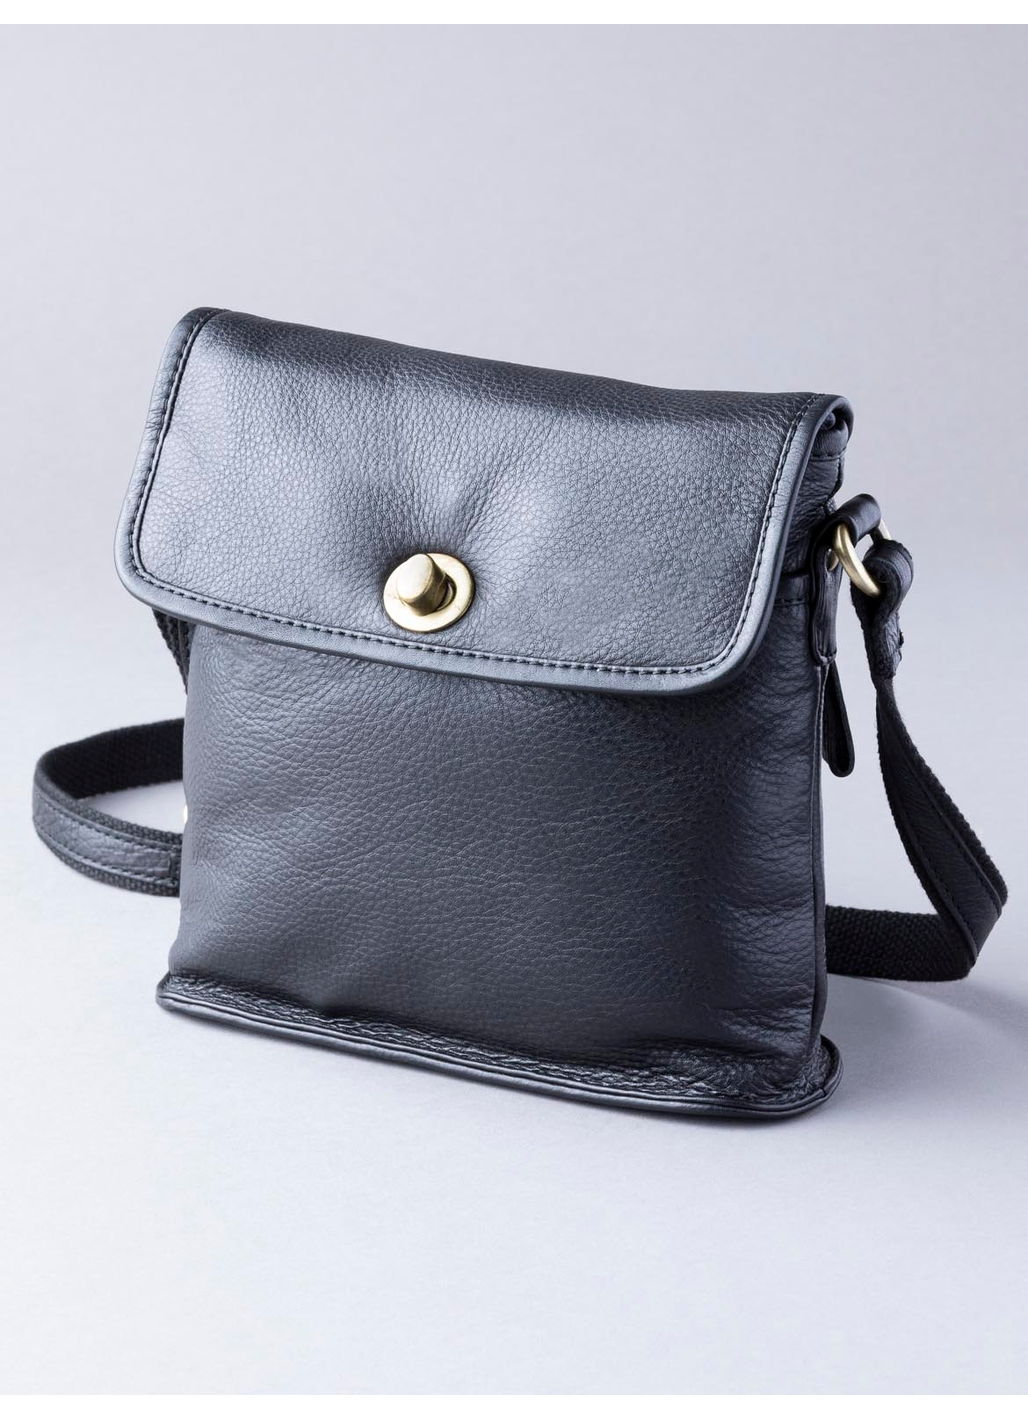 Rickerby Leather Turn Lock Cross Body Bag in Black